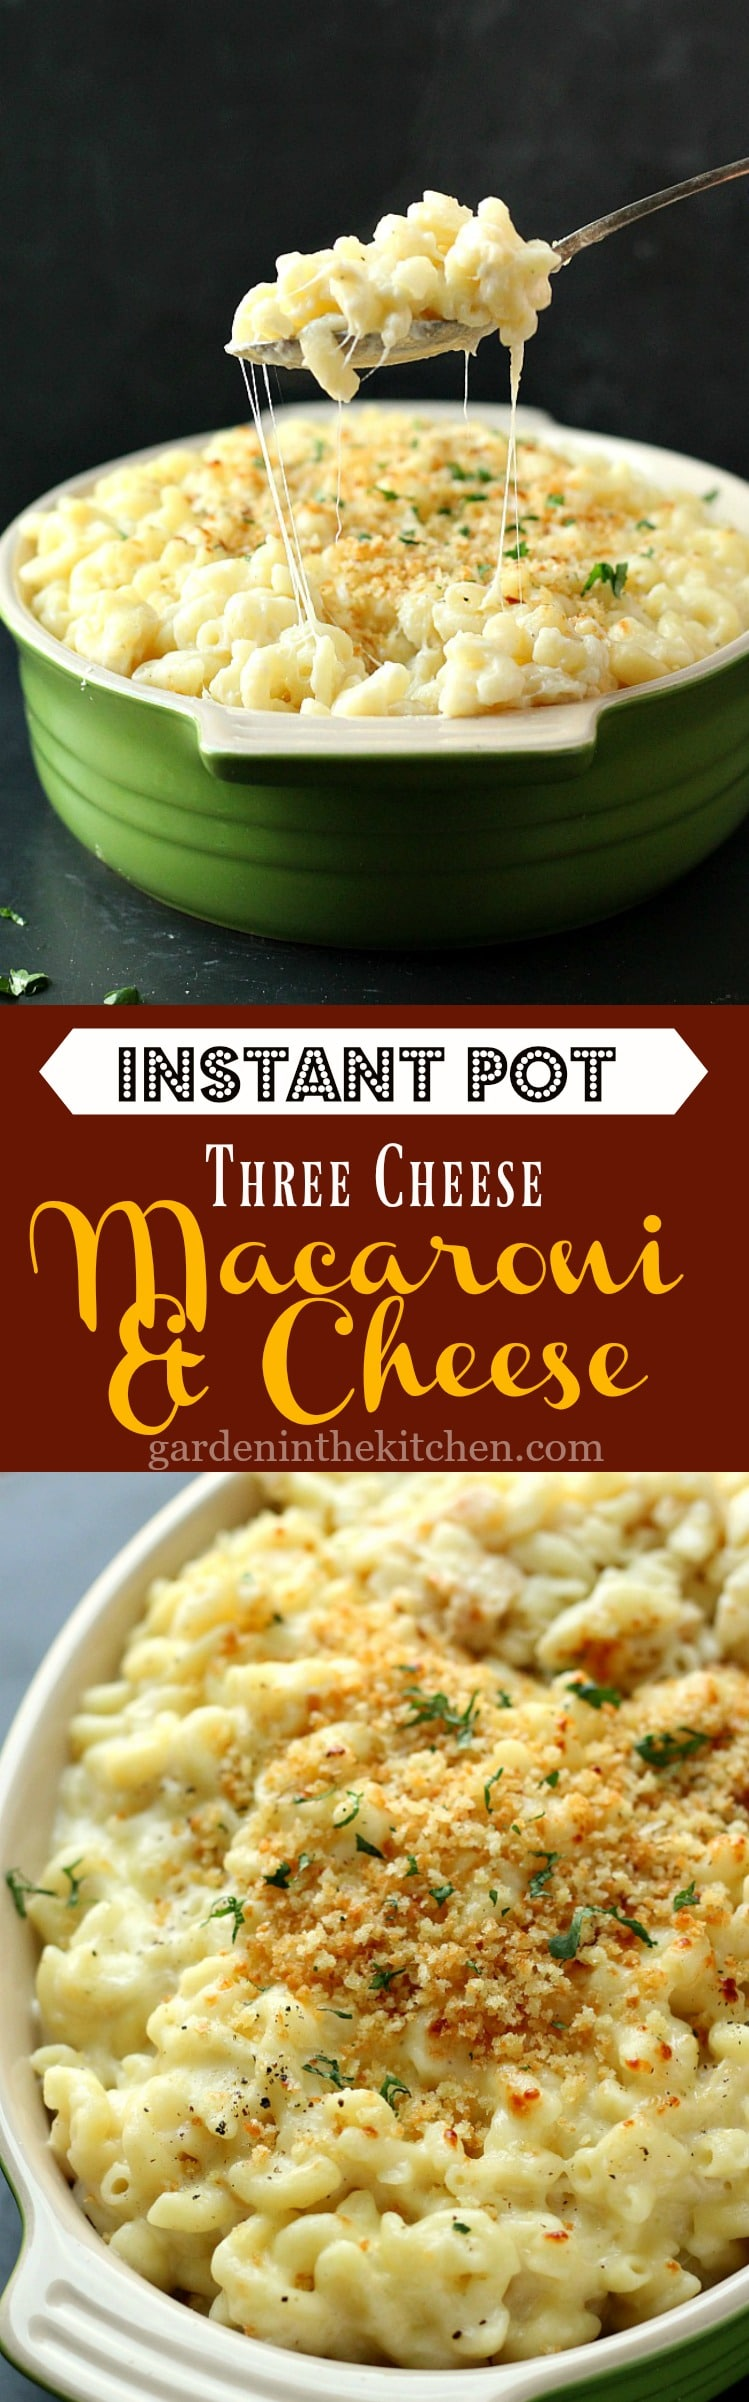 Instant Pot Three Cheese Macaroni | Garden in the Kitchen